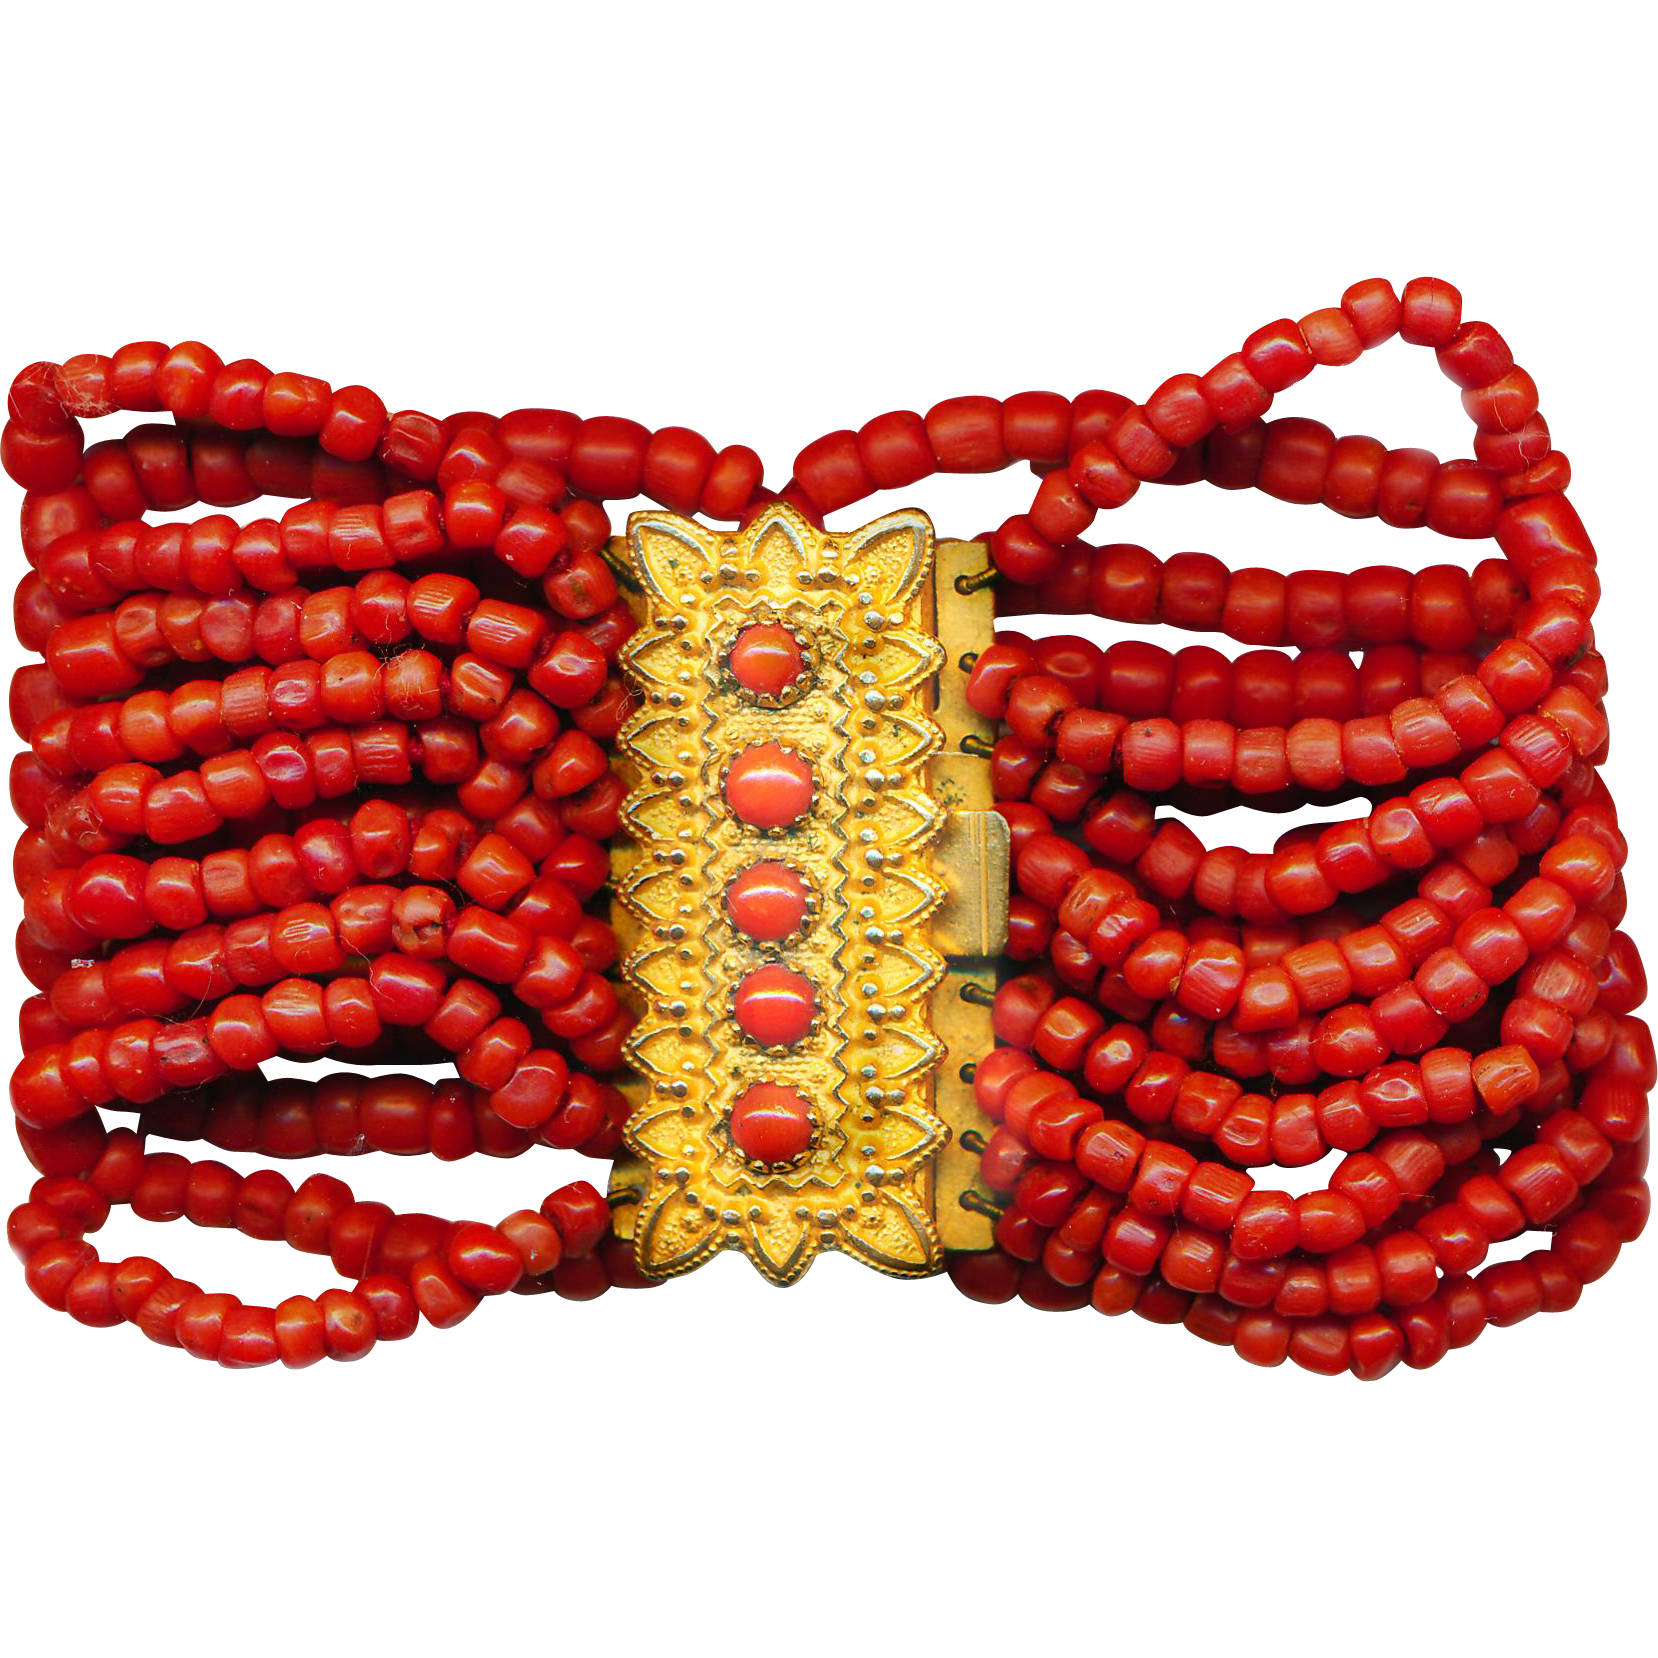 Bracelet--Mid-19th C. Interwoven Red-orange Coral Beads Woven in Gold-plated Brass